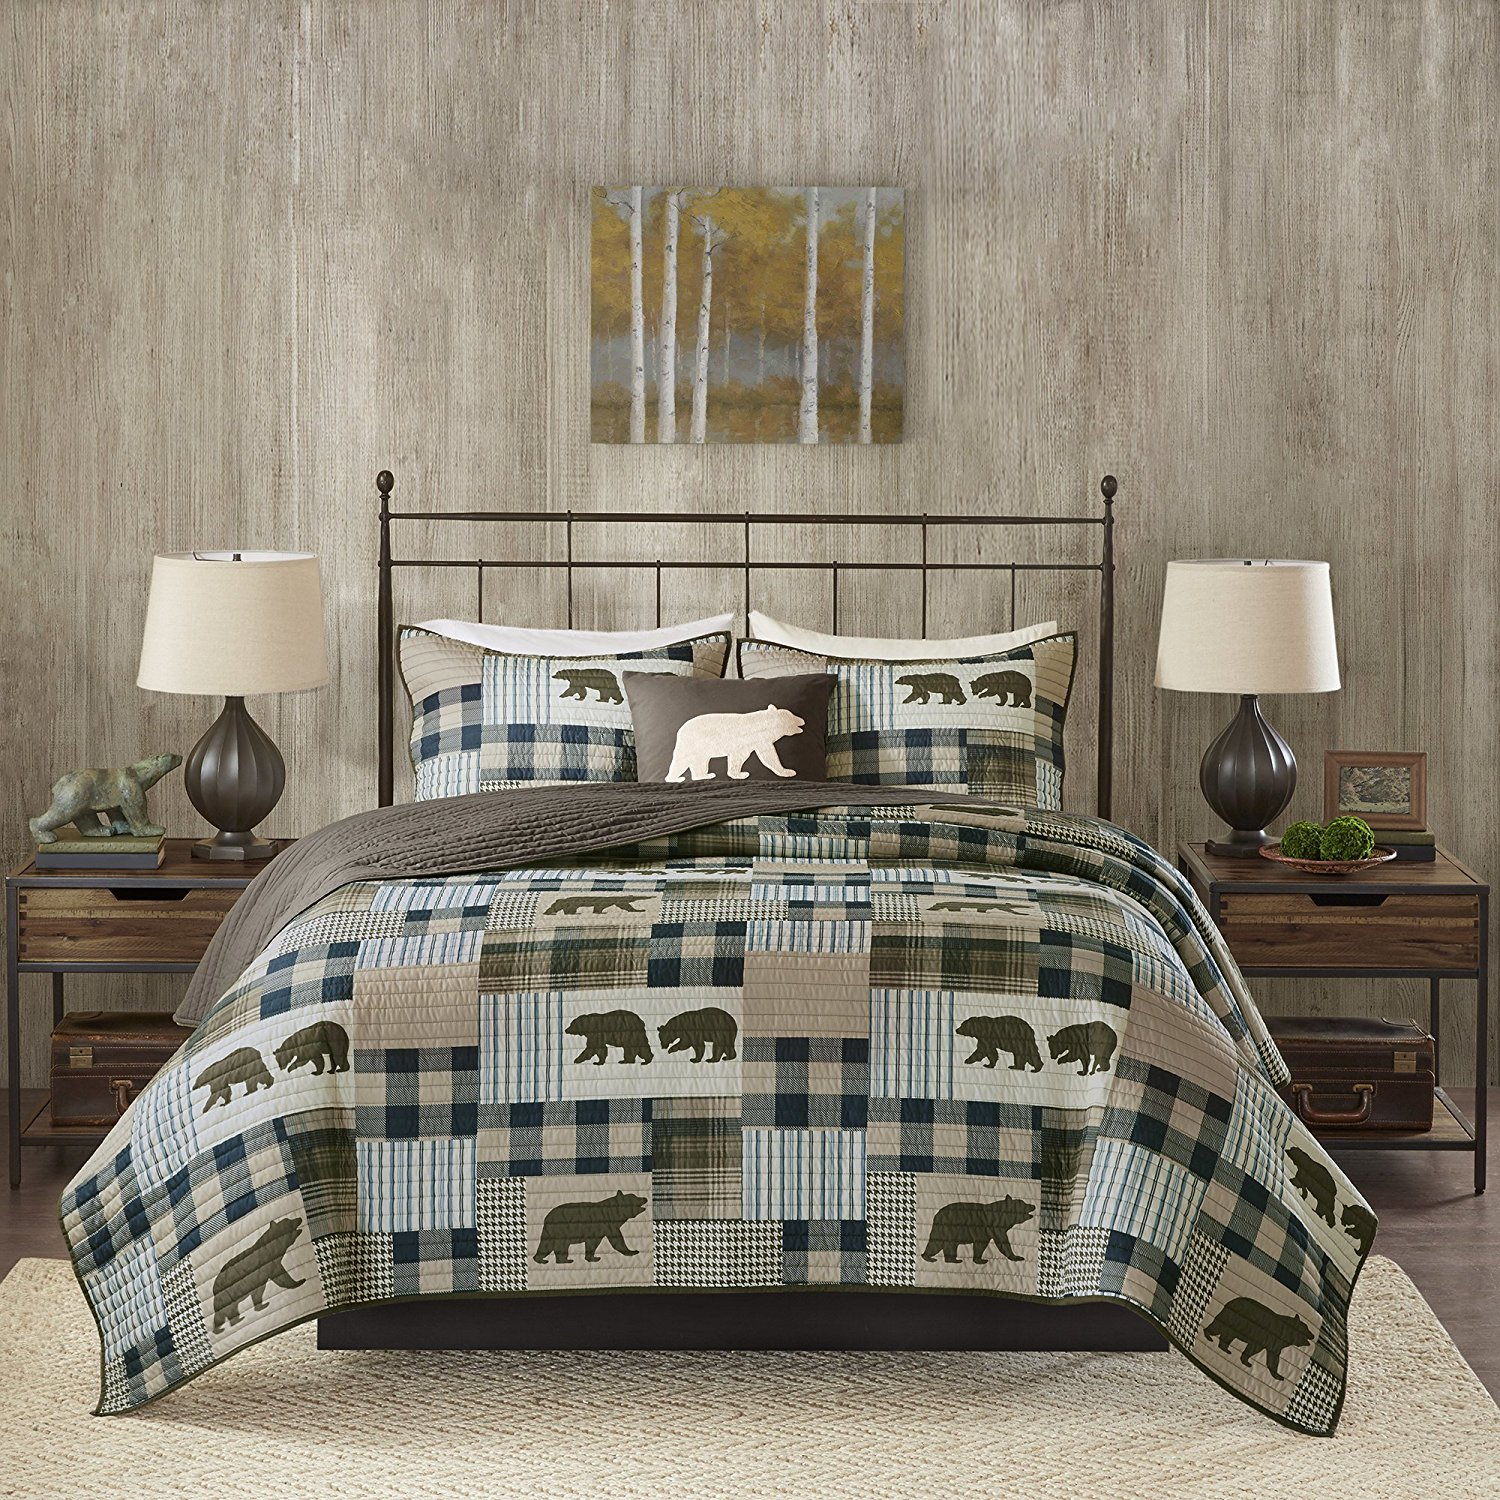 4 Piece Oversized Brown Blue White Full Queen Quilt Set, Patchwork Pattern Bedding Tartan Plaid Themed Checkered Bear Mountain Winter Cozy Stylish Cabin Lodge Cottage Trendy Animal, Polyester